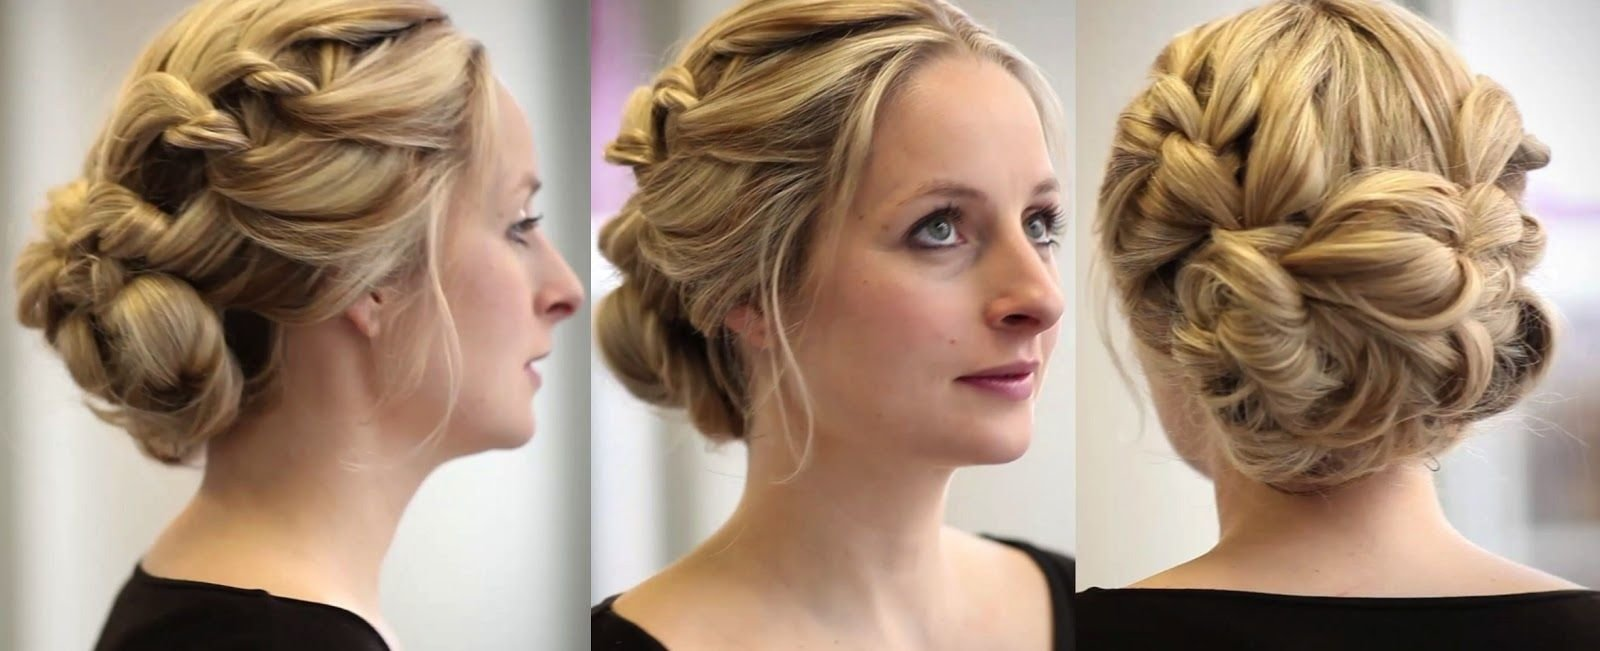 Free Wedding Hairstyles On Pinterest Wedding Hairstyles Wallpaper